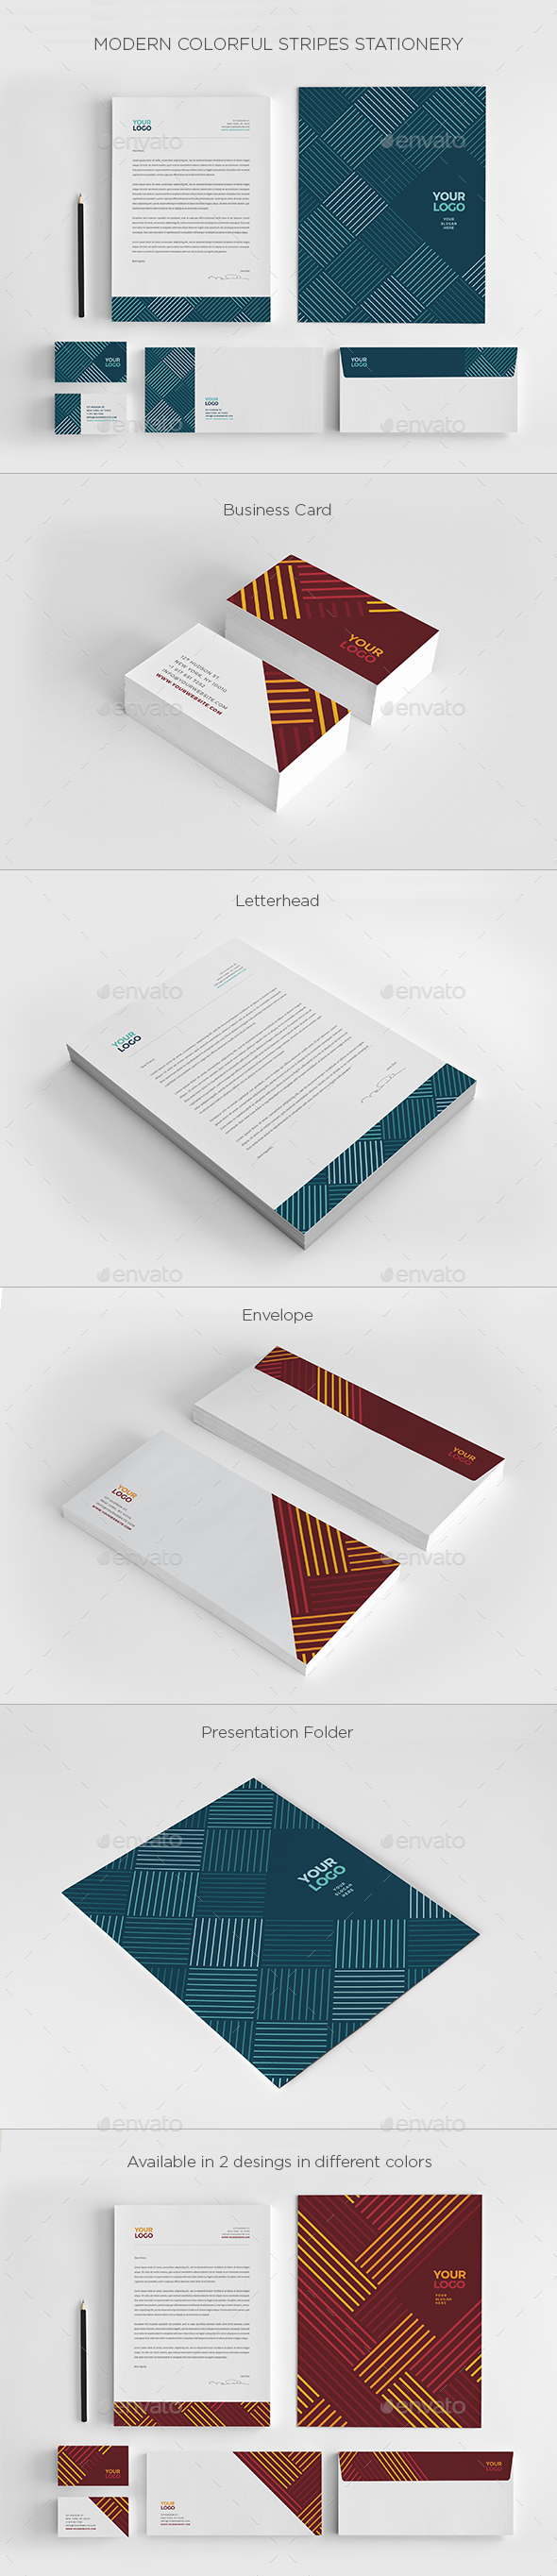 Modern Colorful Stripes Stationery - Stationery Print Templates